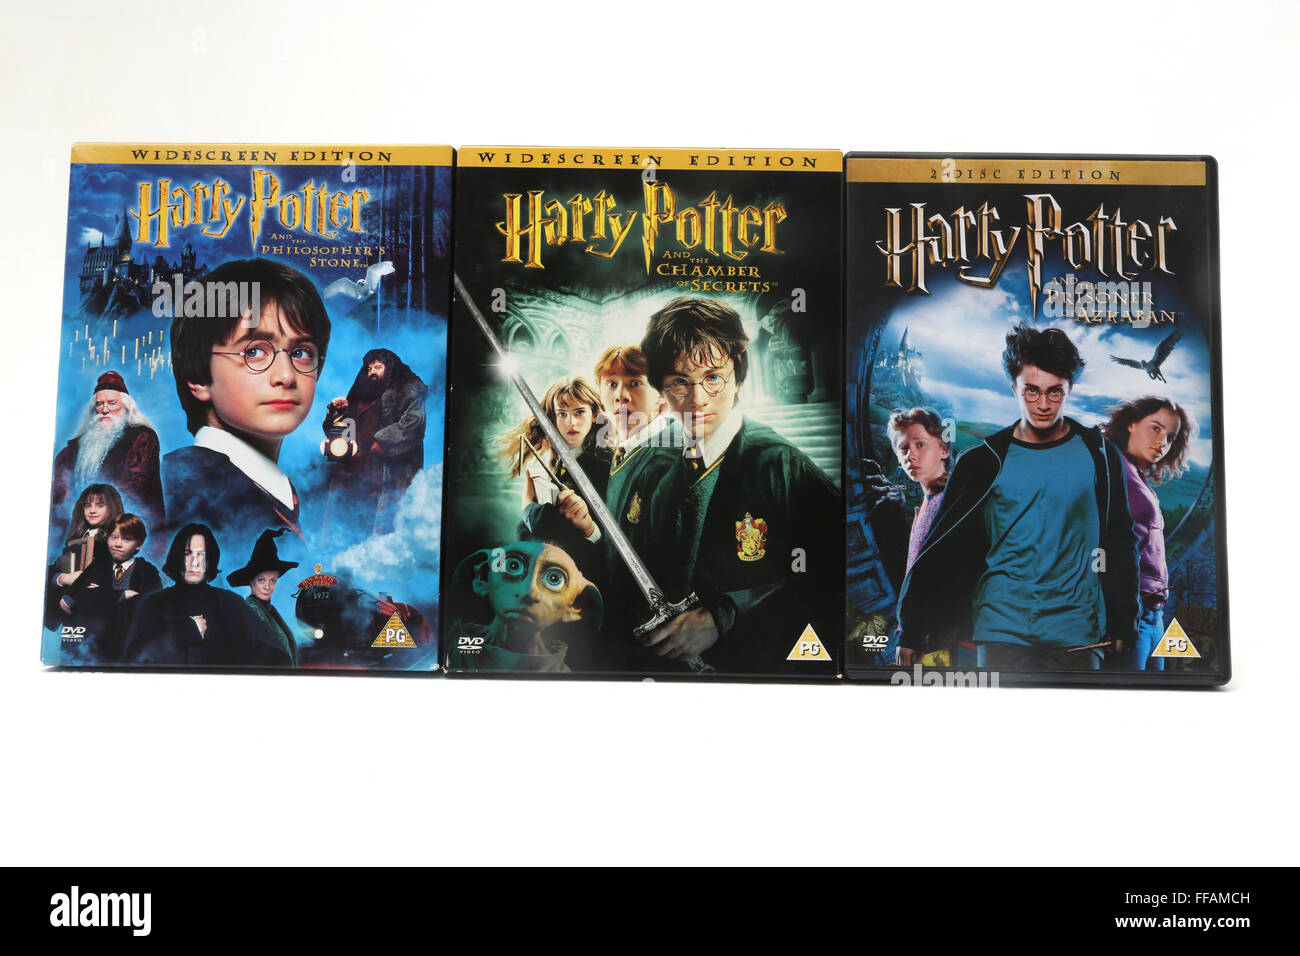 Harry Potter And The Philosopher's Stone, Harry Potter And The Chamber Of Secrets And Harry Potter And The Prisoner - Stock Image